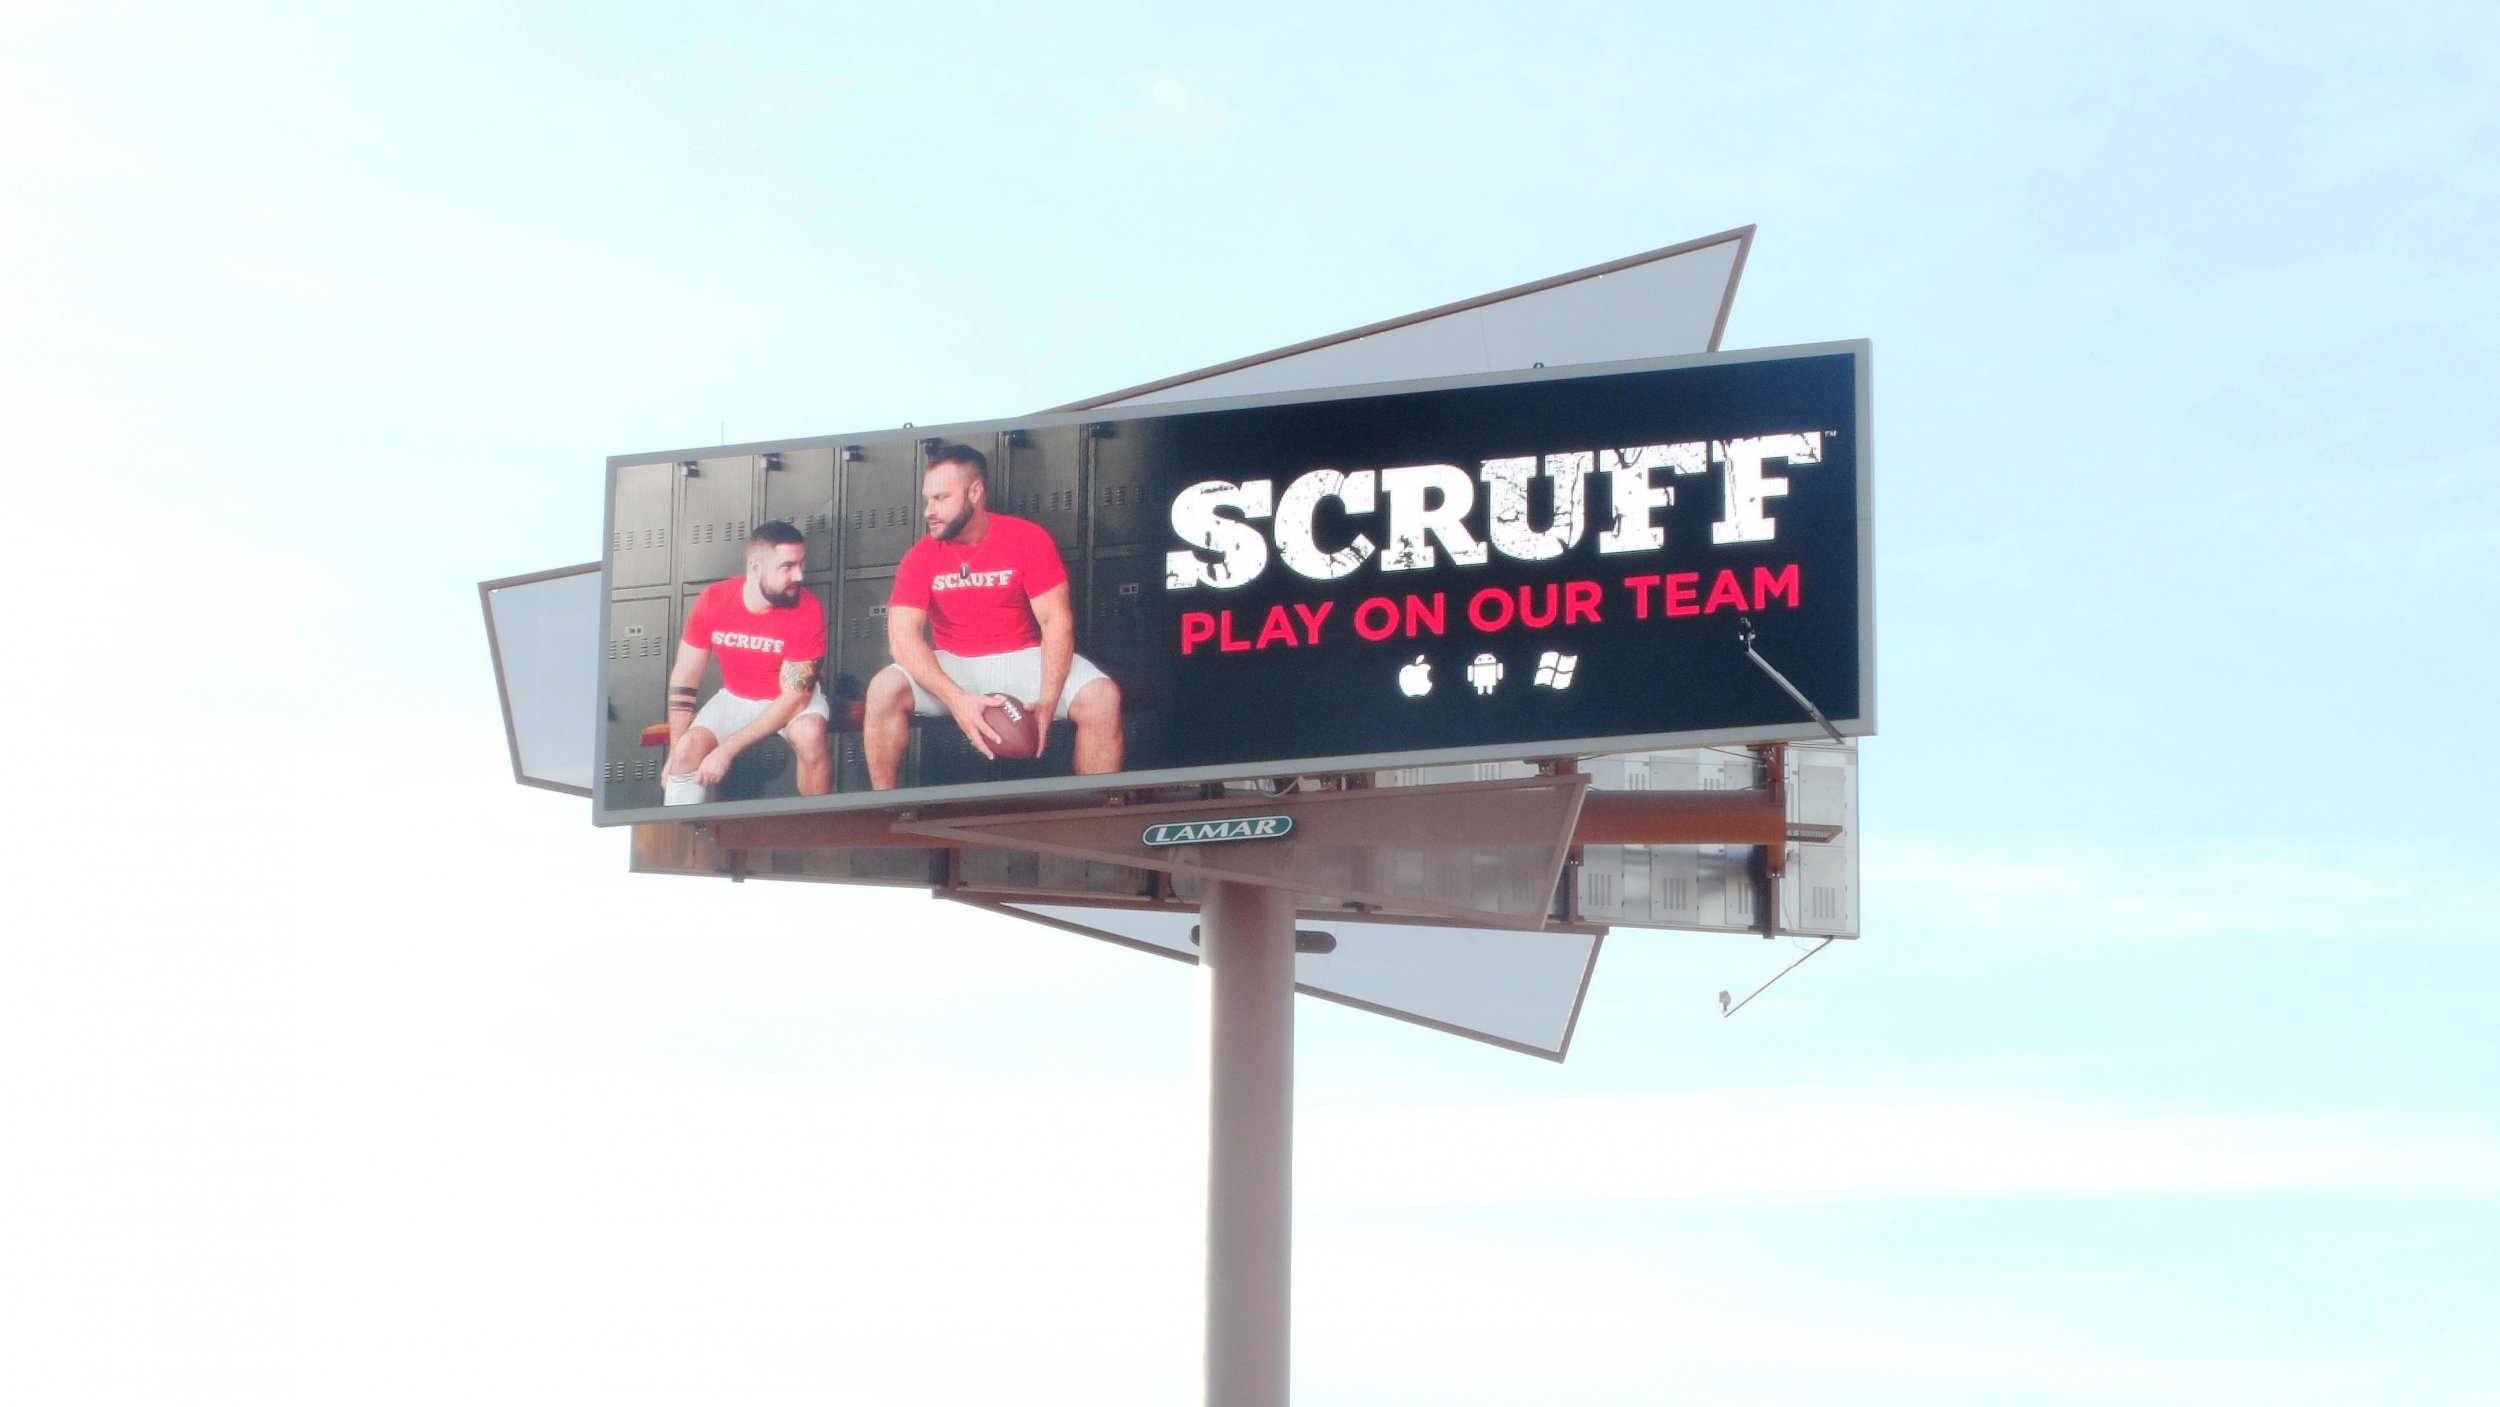 Gay Dating App Scruff Puts 48-Foot Billboard Near Super Bowl Stadium